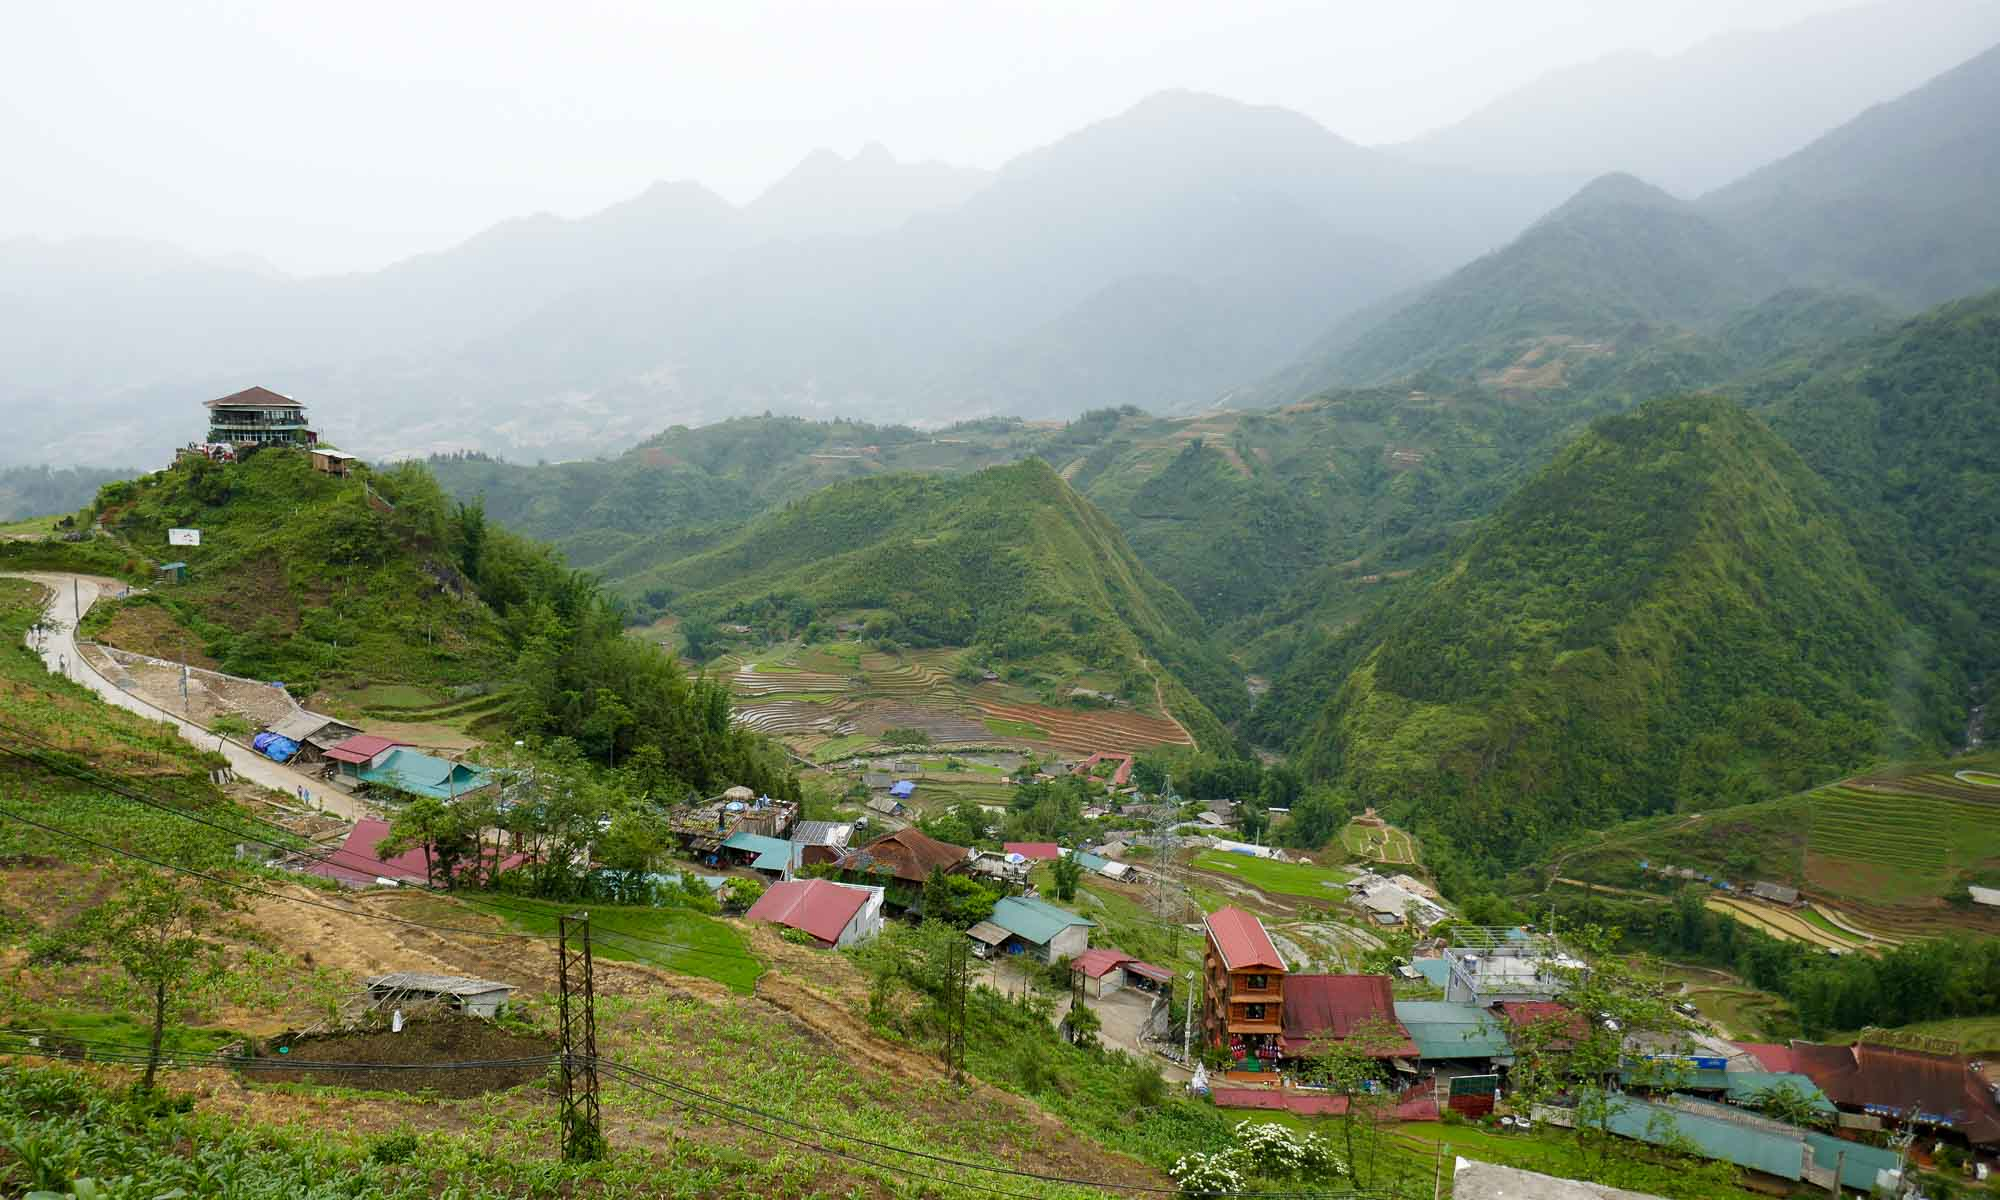 Amazing views on our way to Cat Cat Village